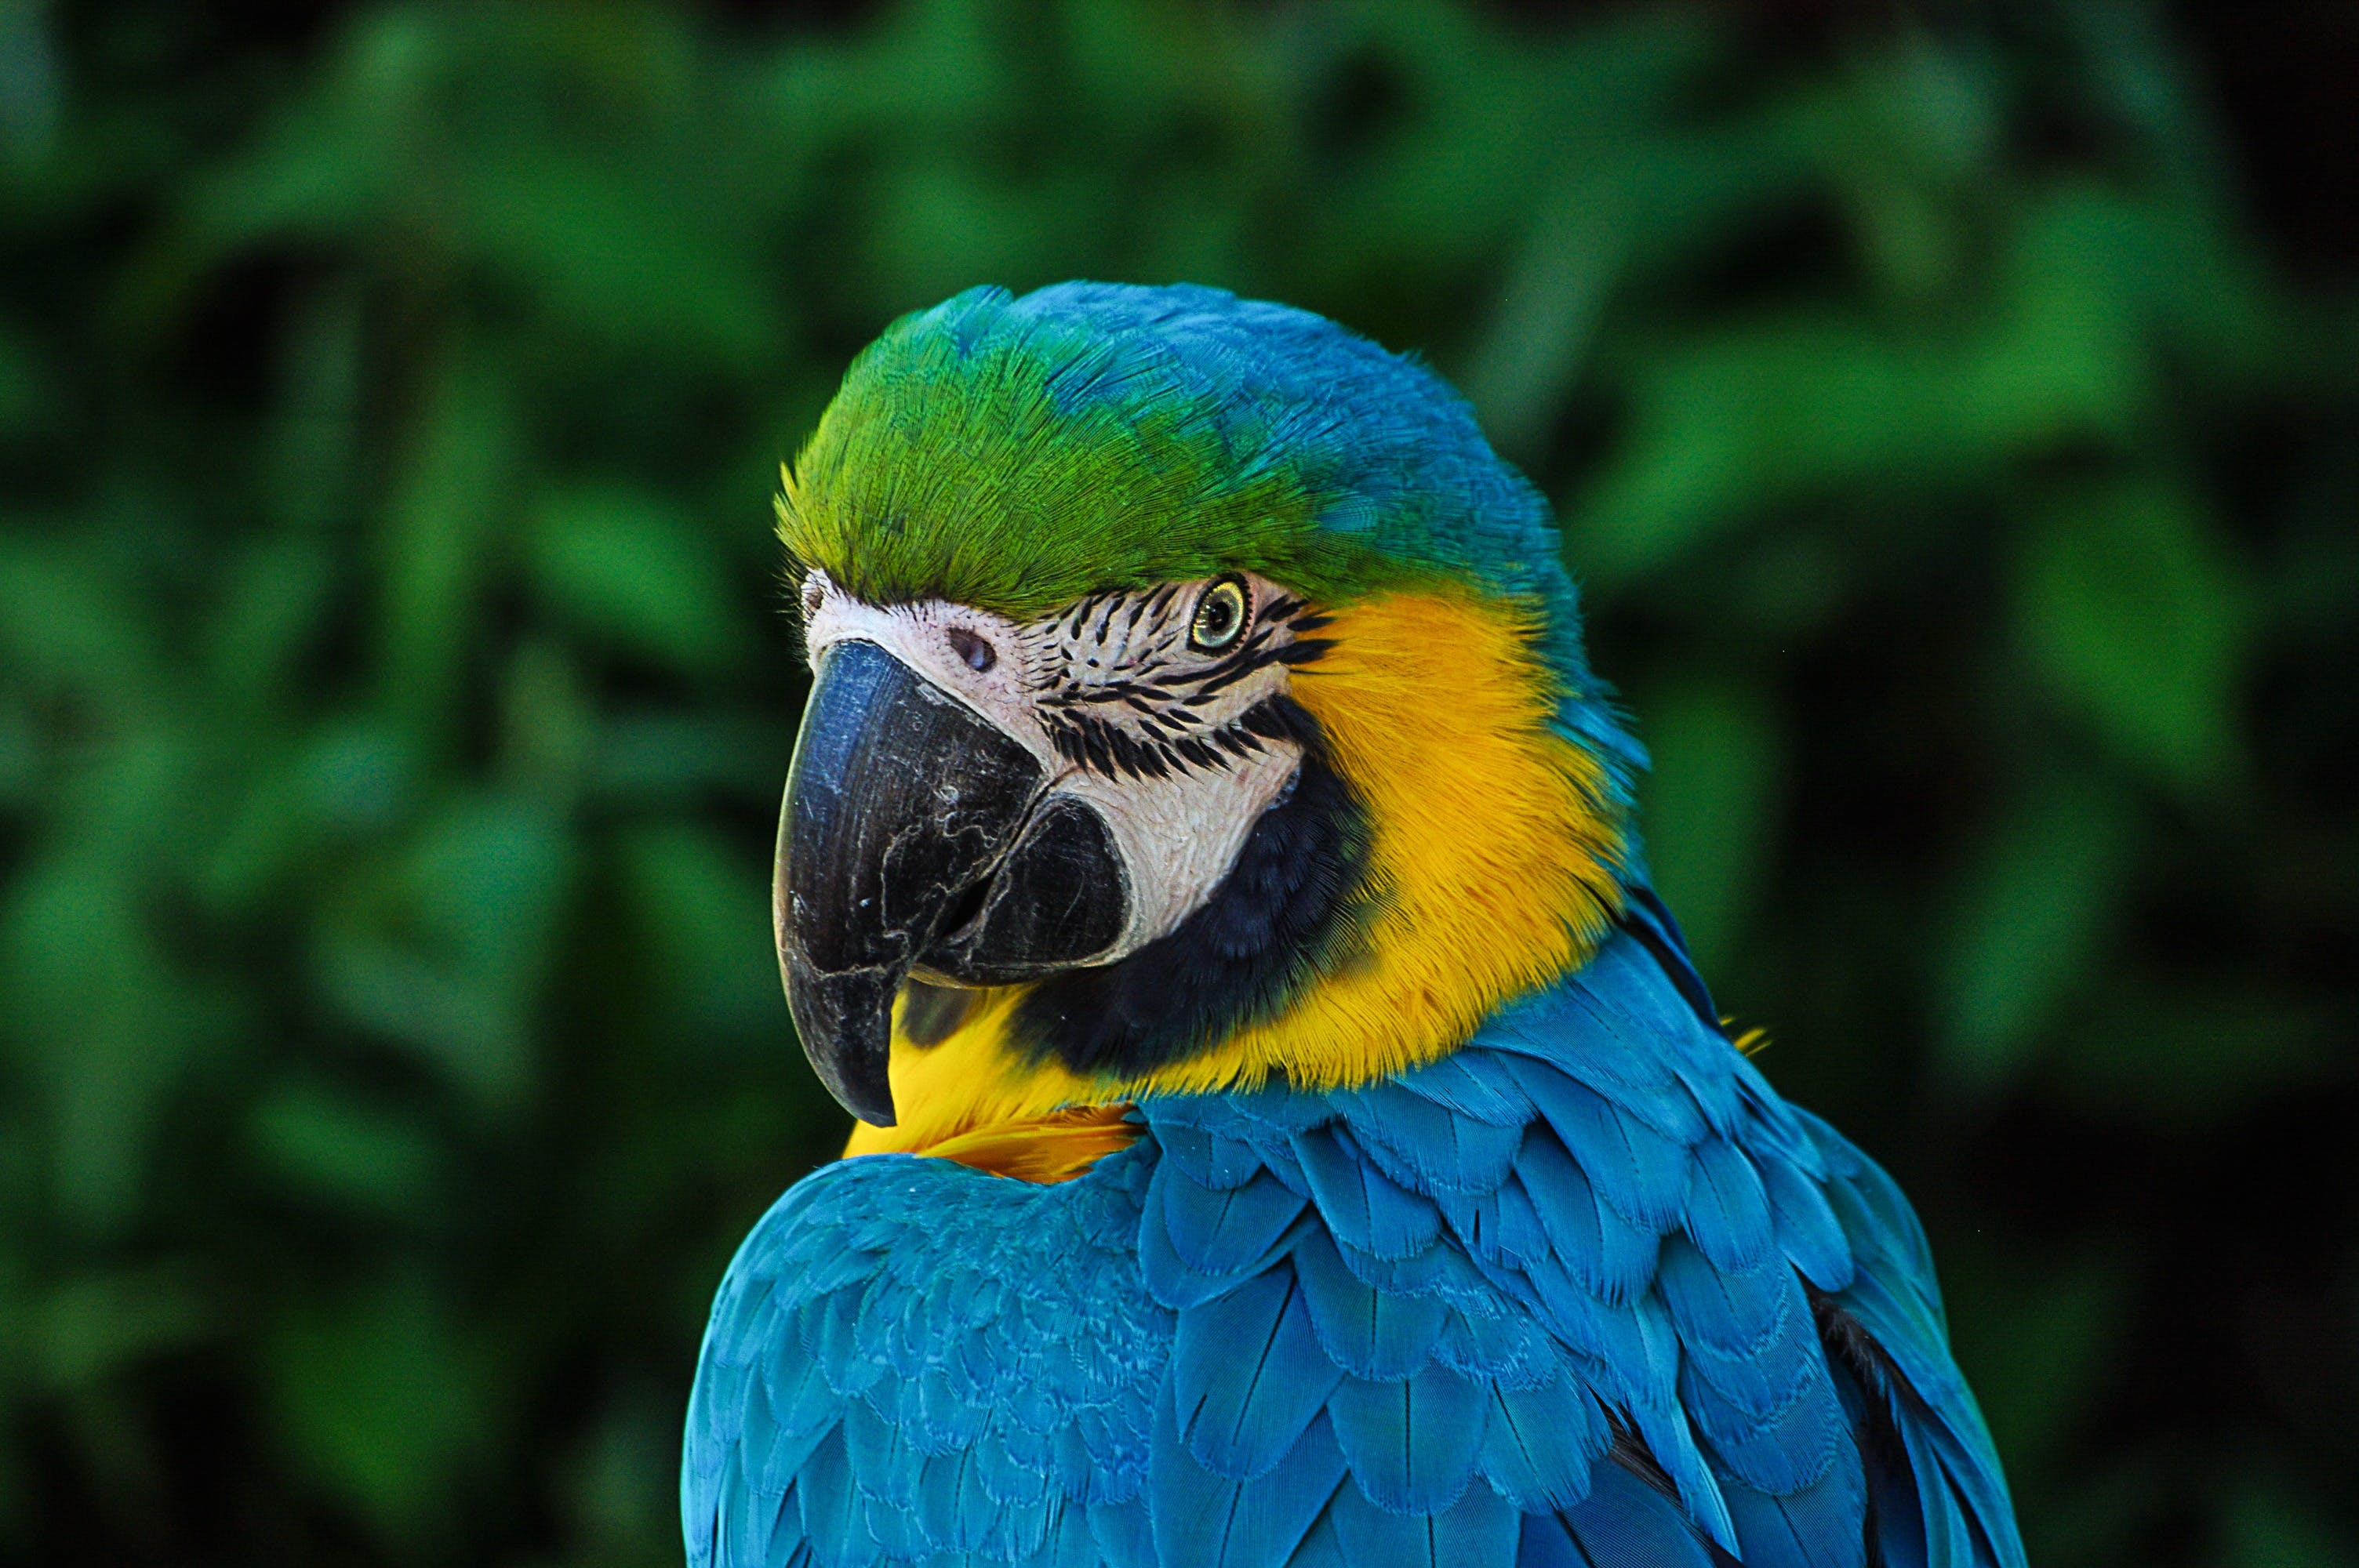 Blue and Yellow Bird